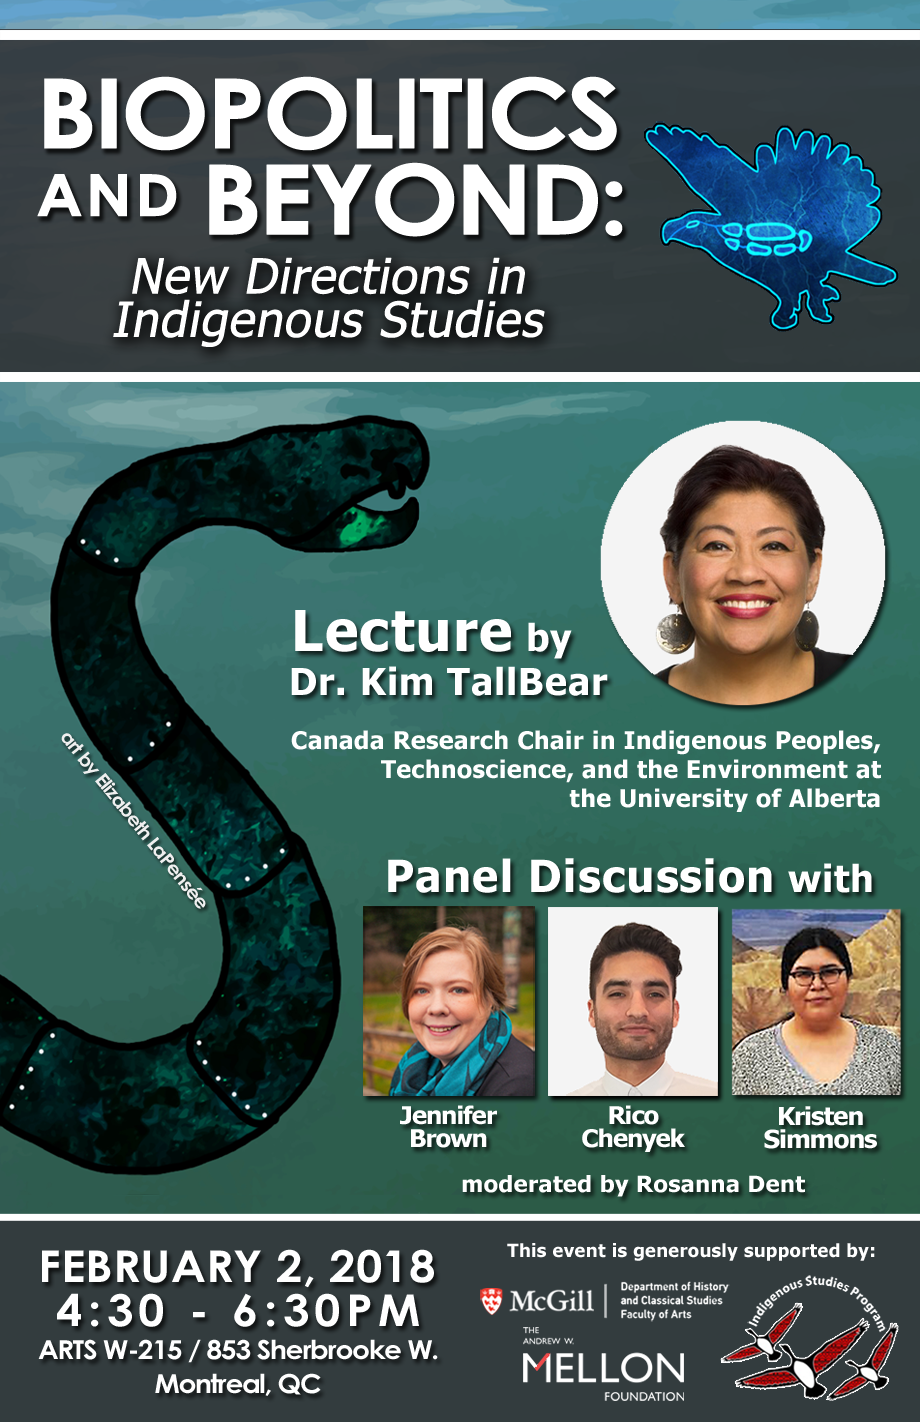 Poster for Feb. 2, 2018 ISP event - Biopolitics and Beyond: New Directions in Indigenous Studies, lecture and panel discussion